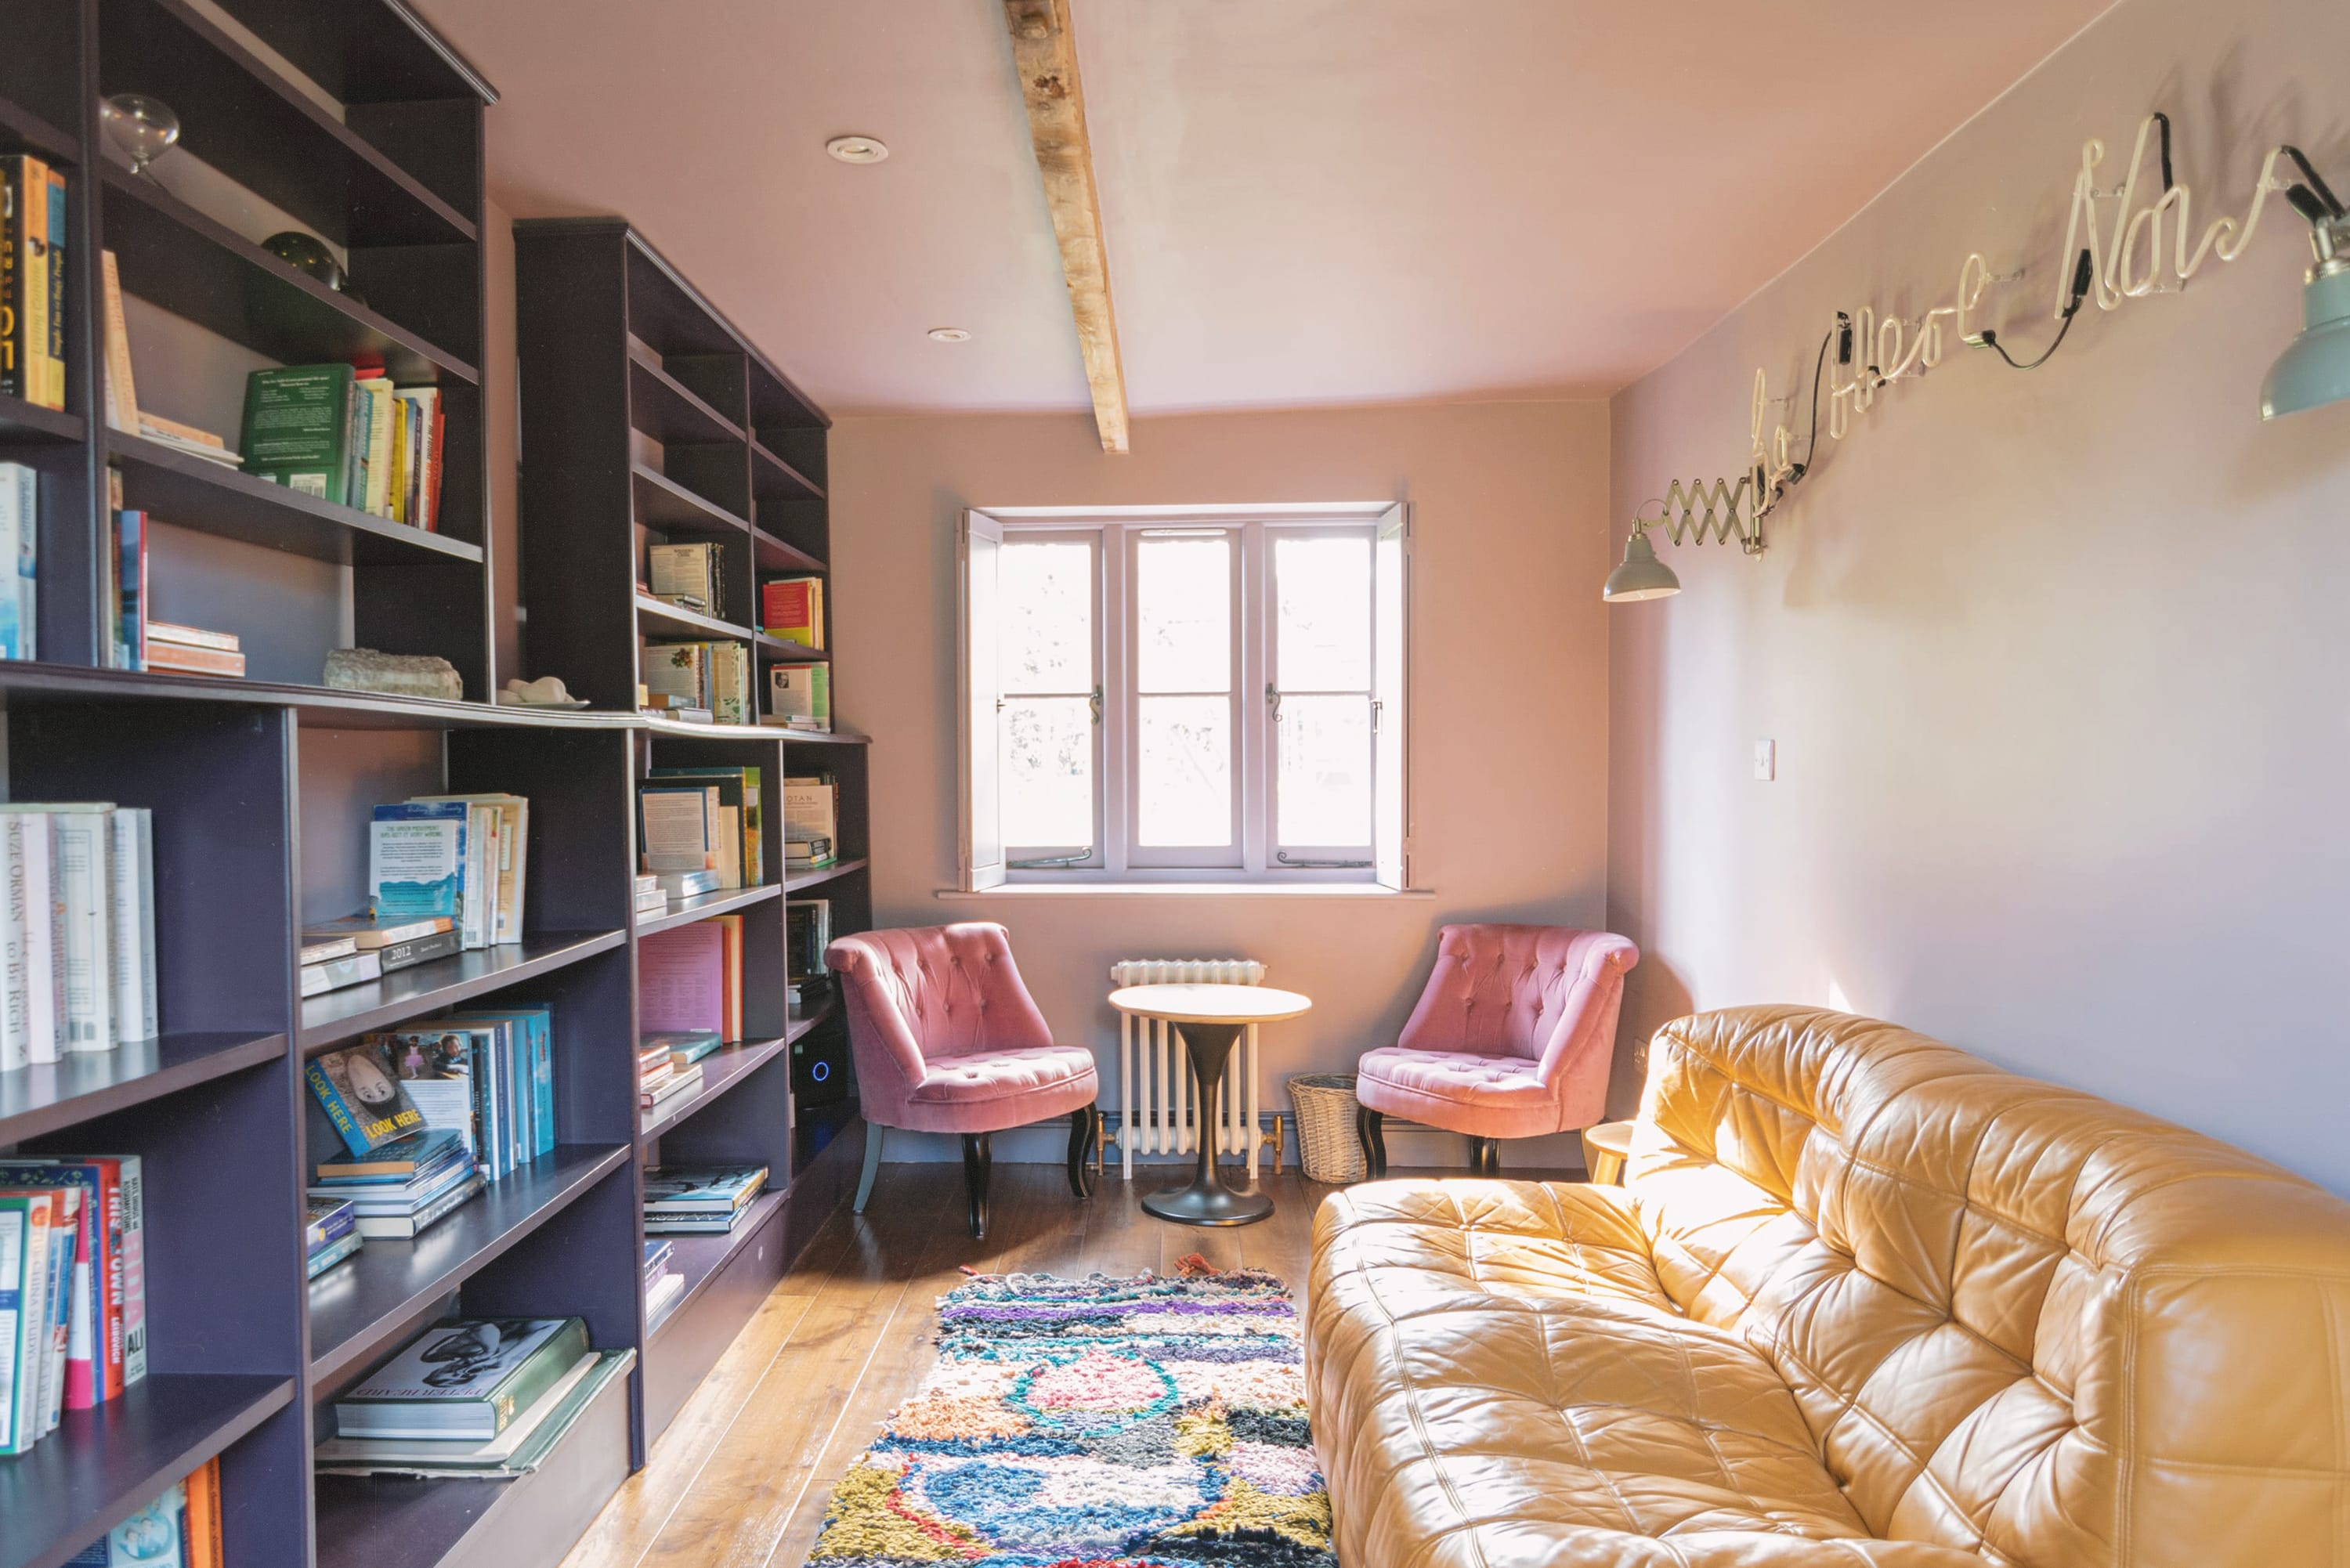 Library room with book shelves and seating